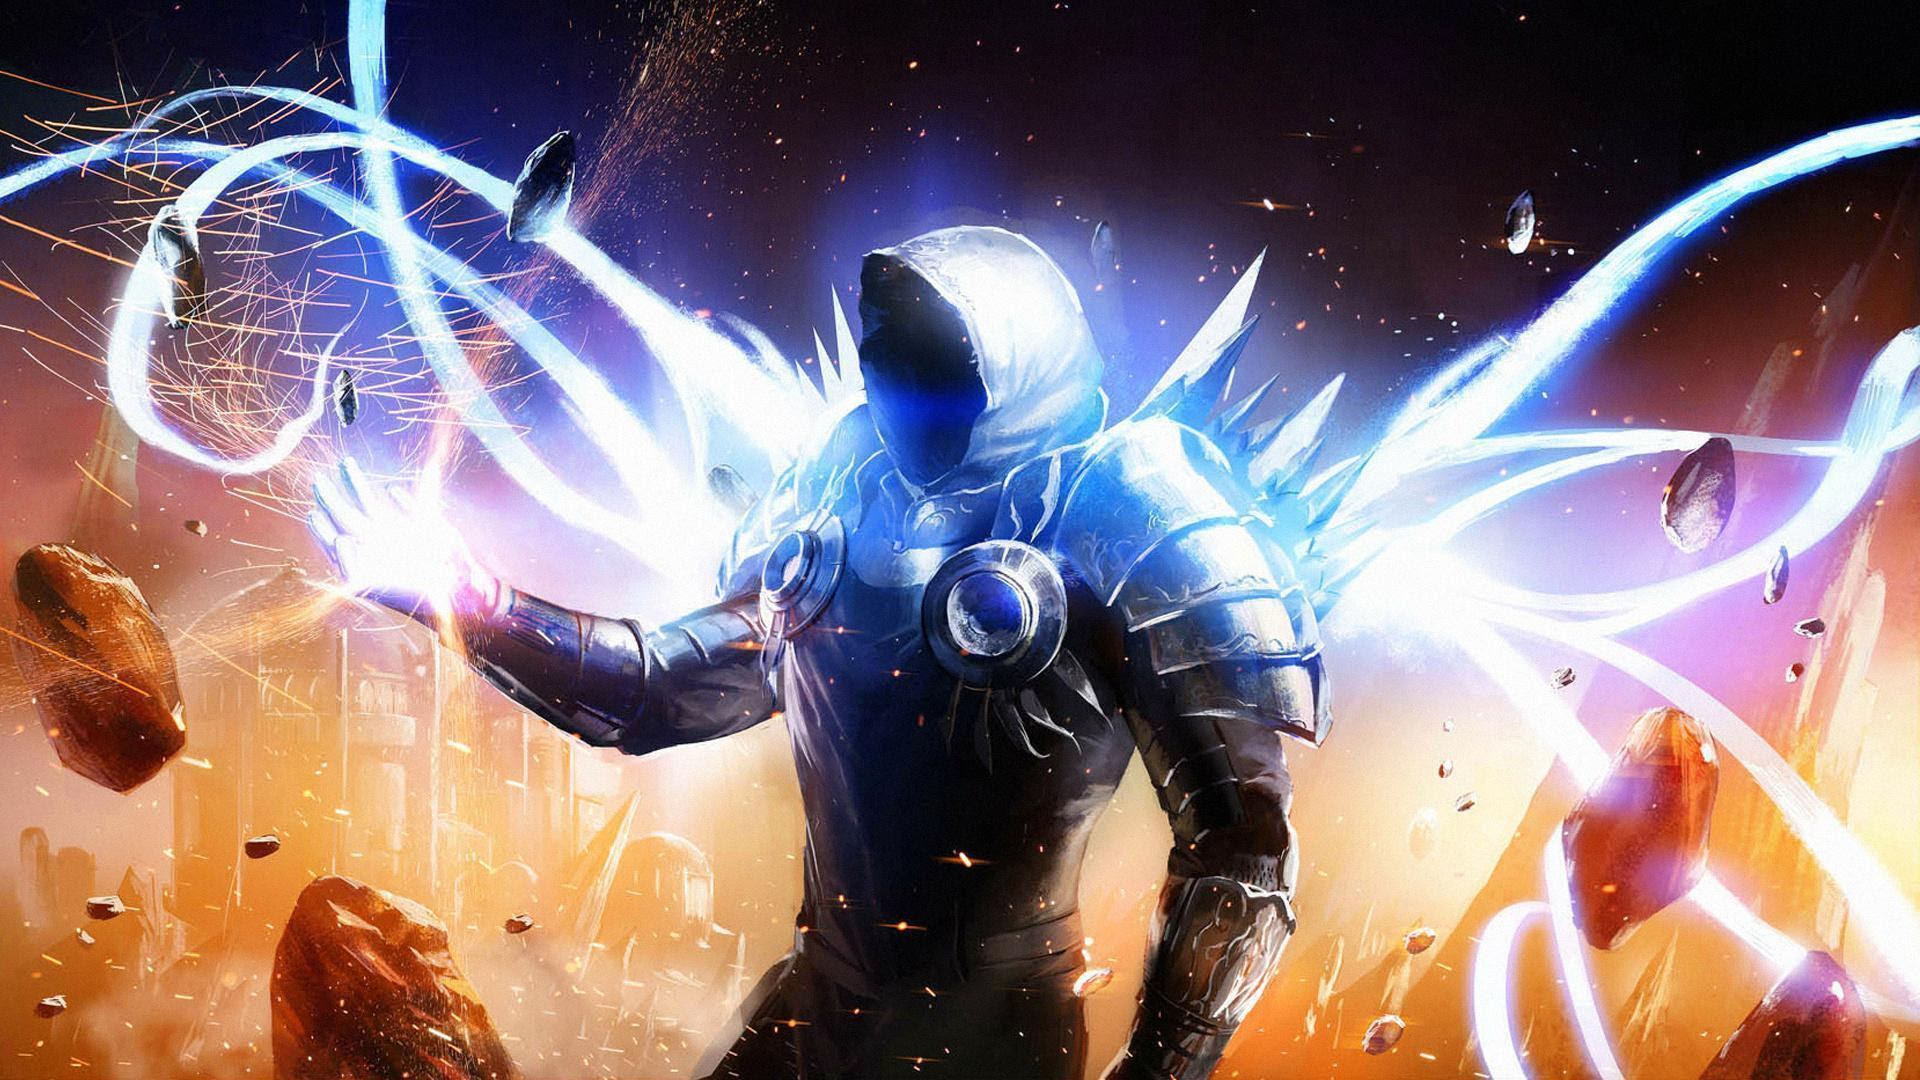 Wallpaper Collection : +37 Free HD cool gaming backgrounds Background to Download and Use (PC ...